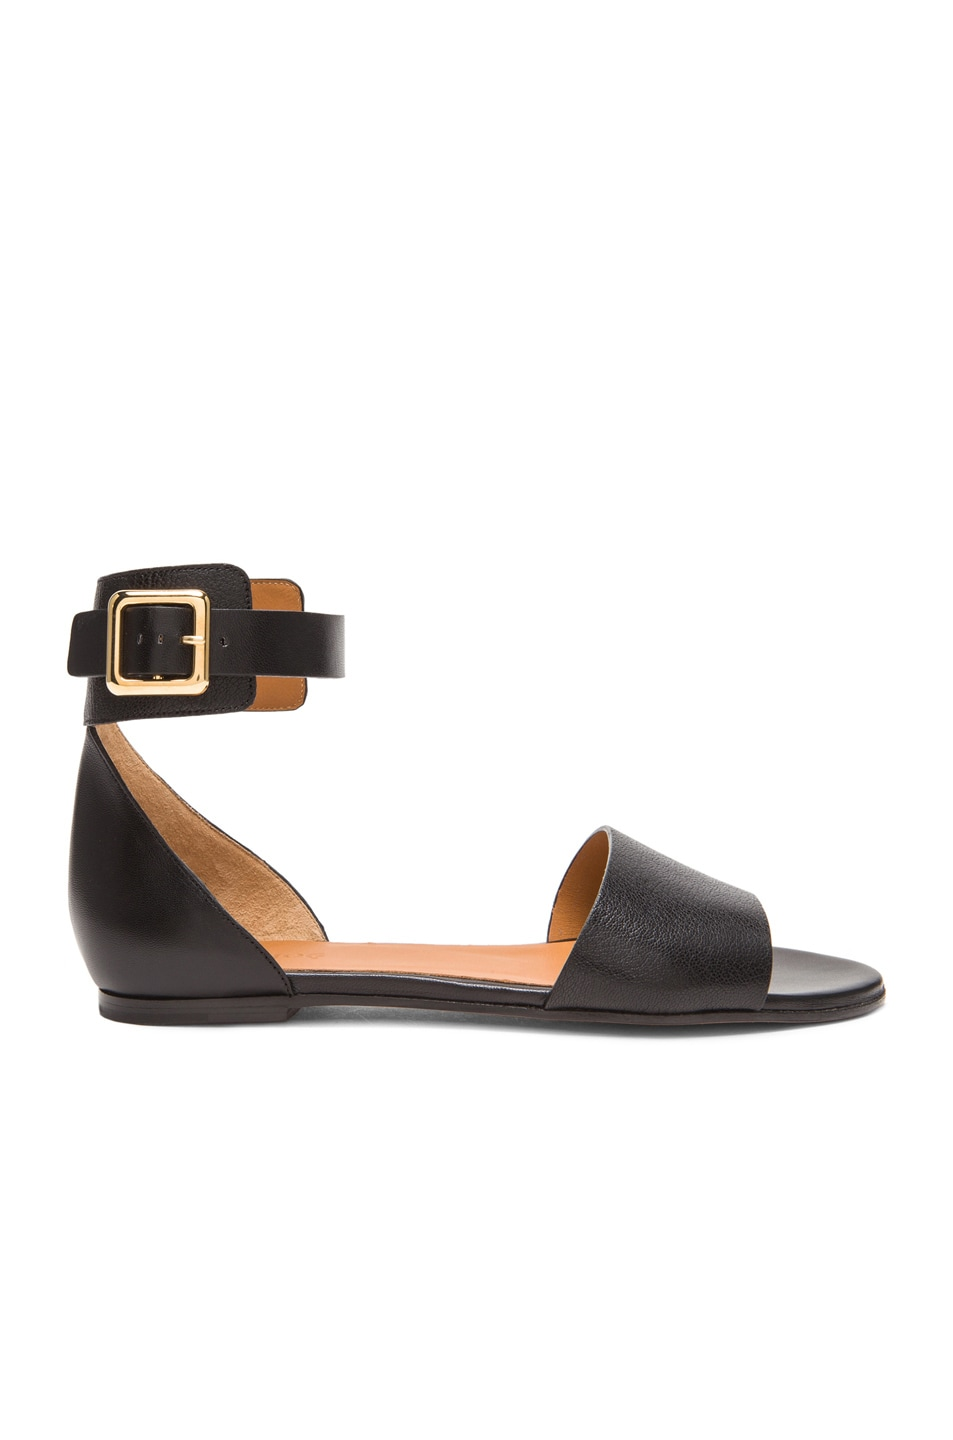 Image 1 of Chloe Buckled Ankle Strap Leather Sandals in Black